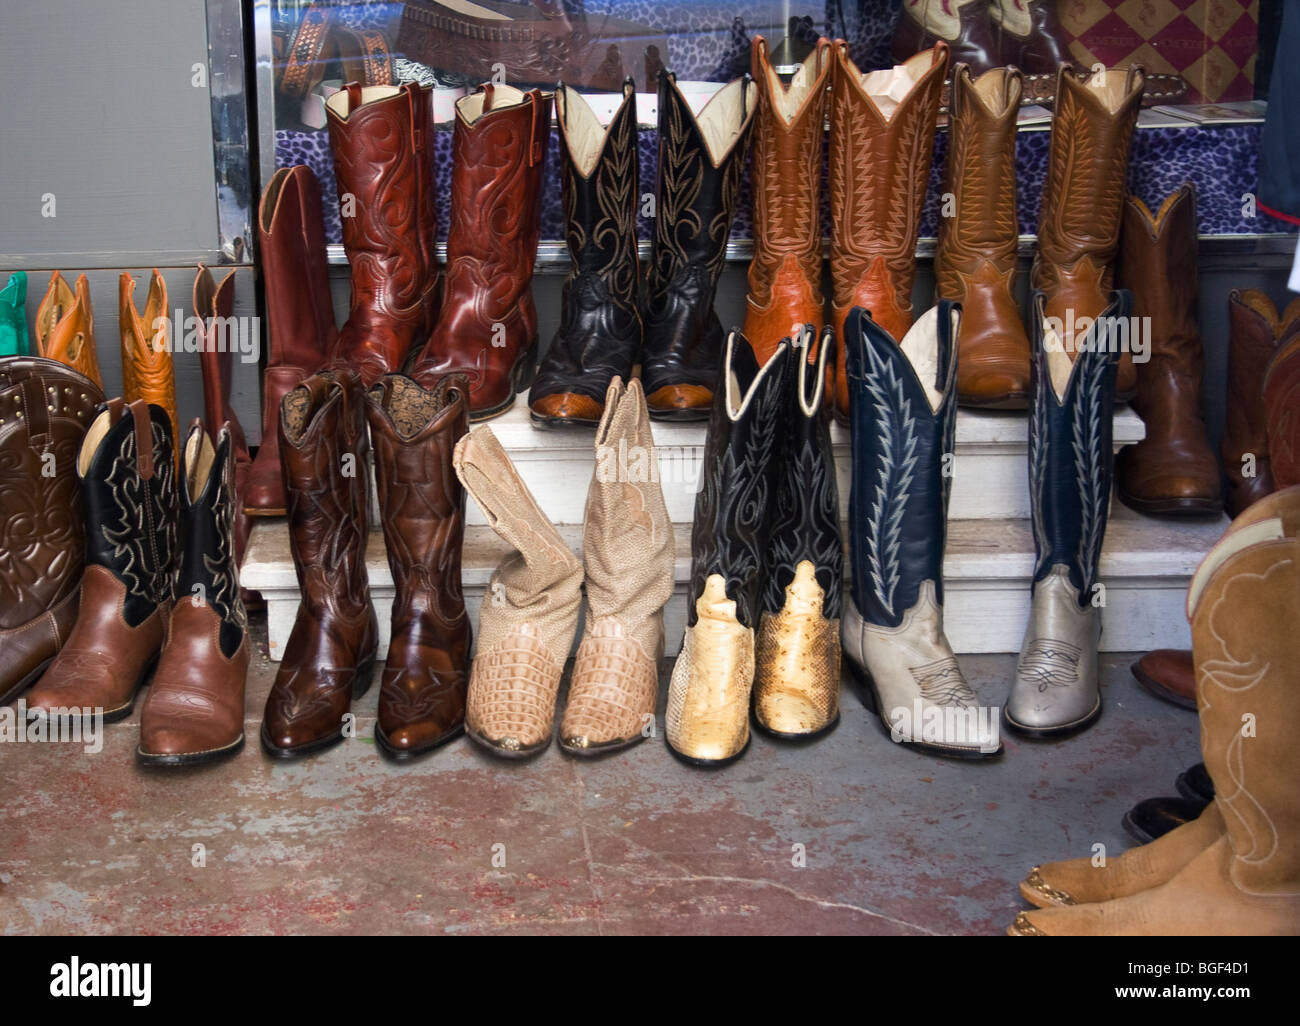 2308104b133 A variety of cowboy boots for sale in a New Orleans shoe store. - Stock